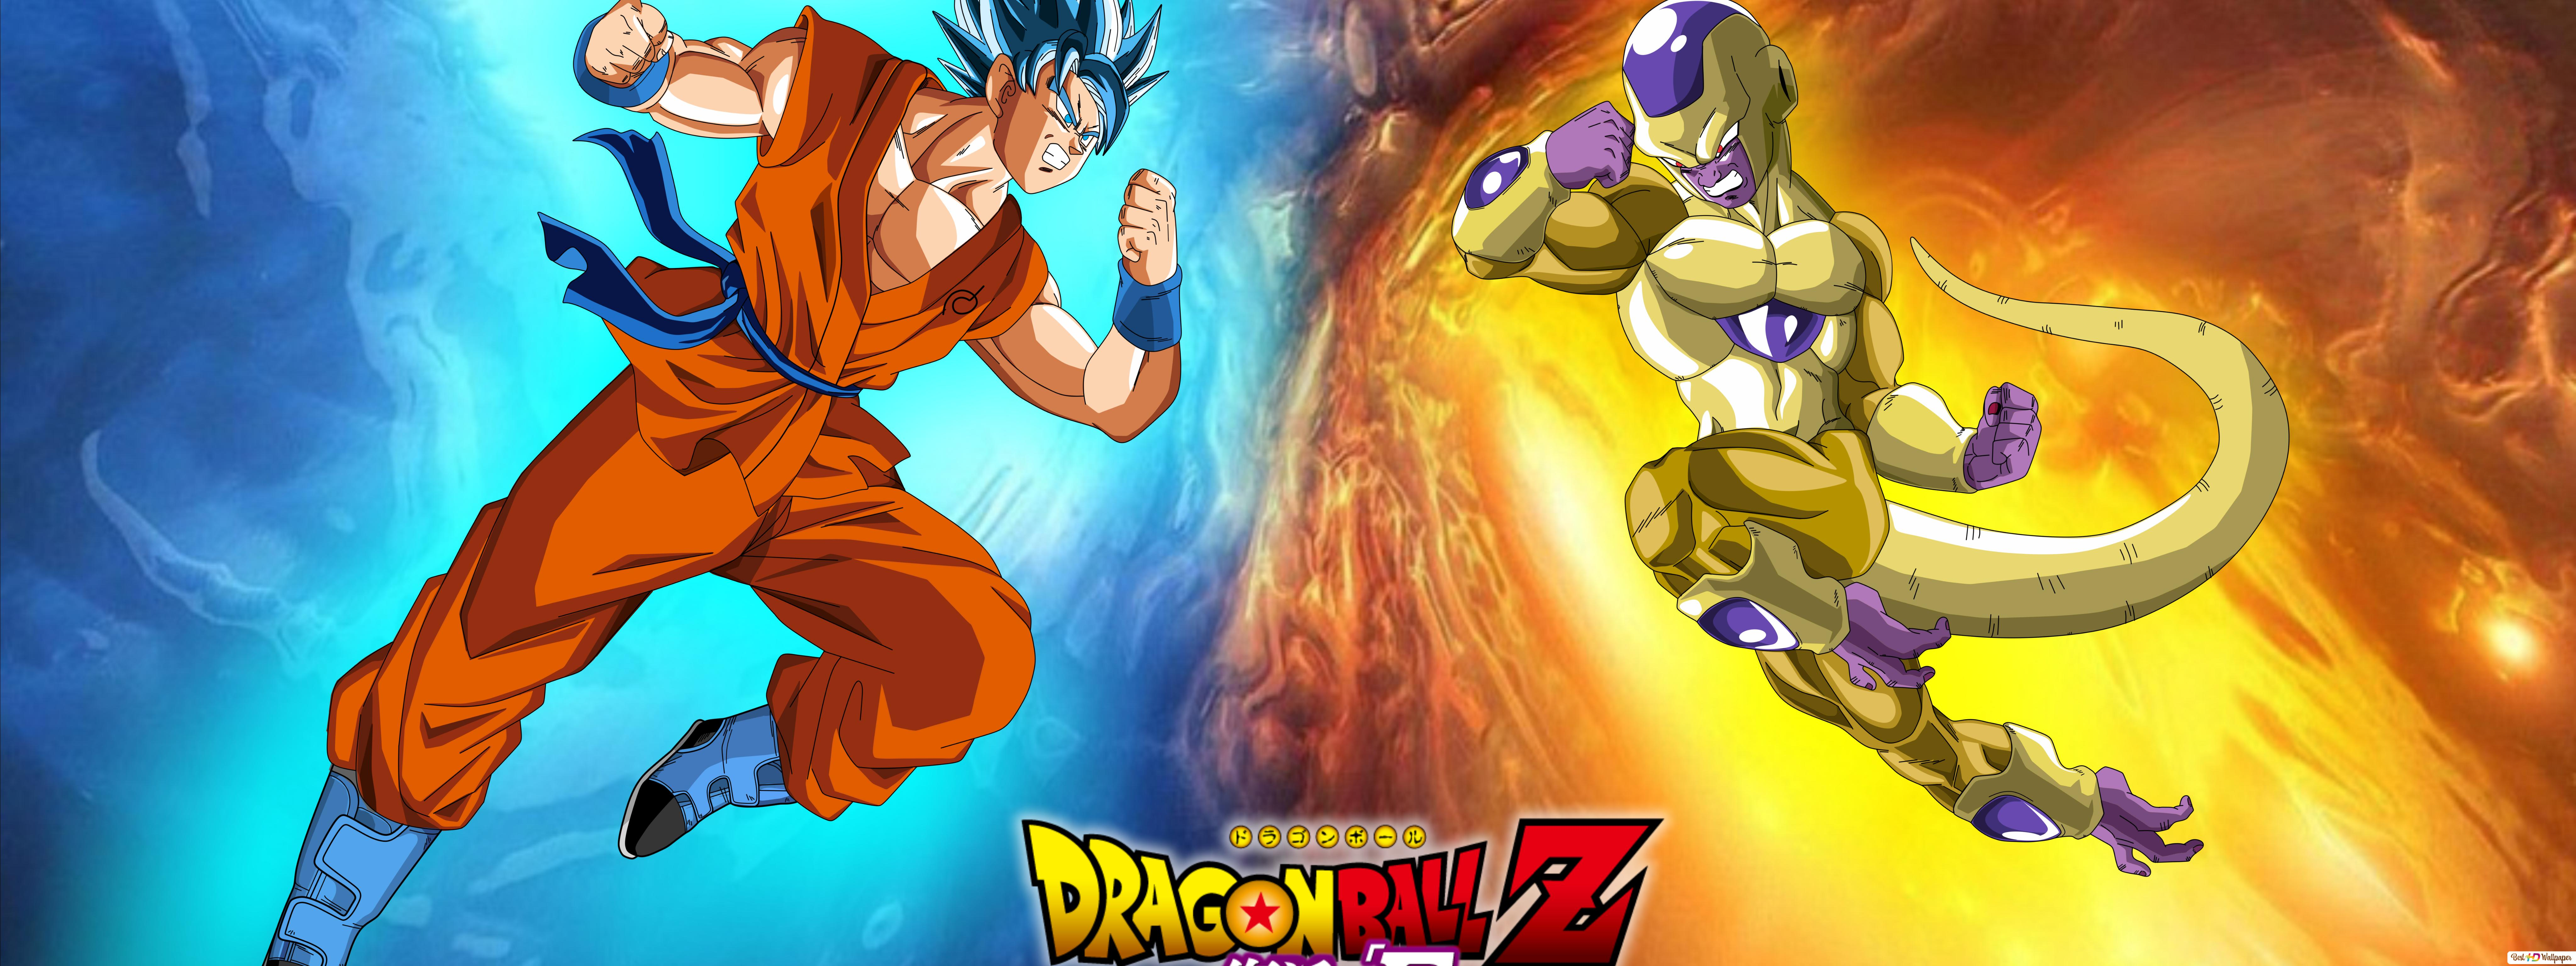 Dragon Ball Z The Resurrection Of Freeza Hd Wallpaper Download